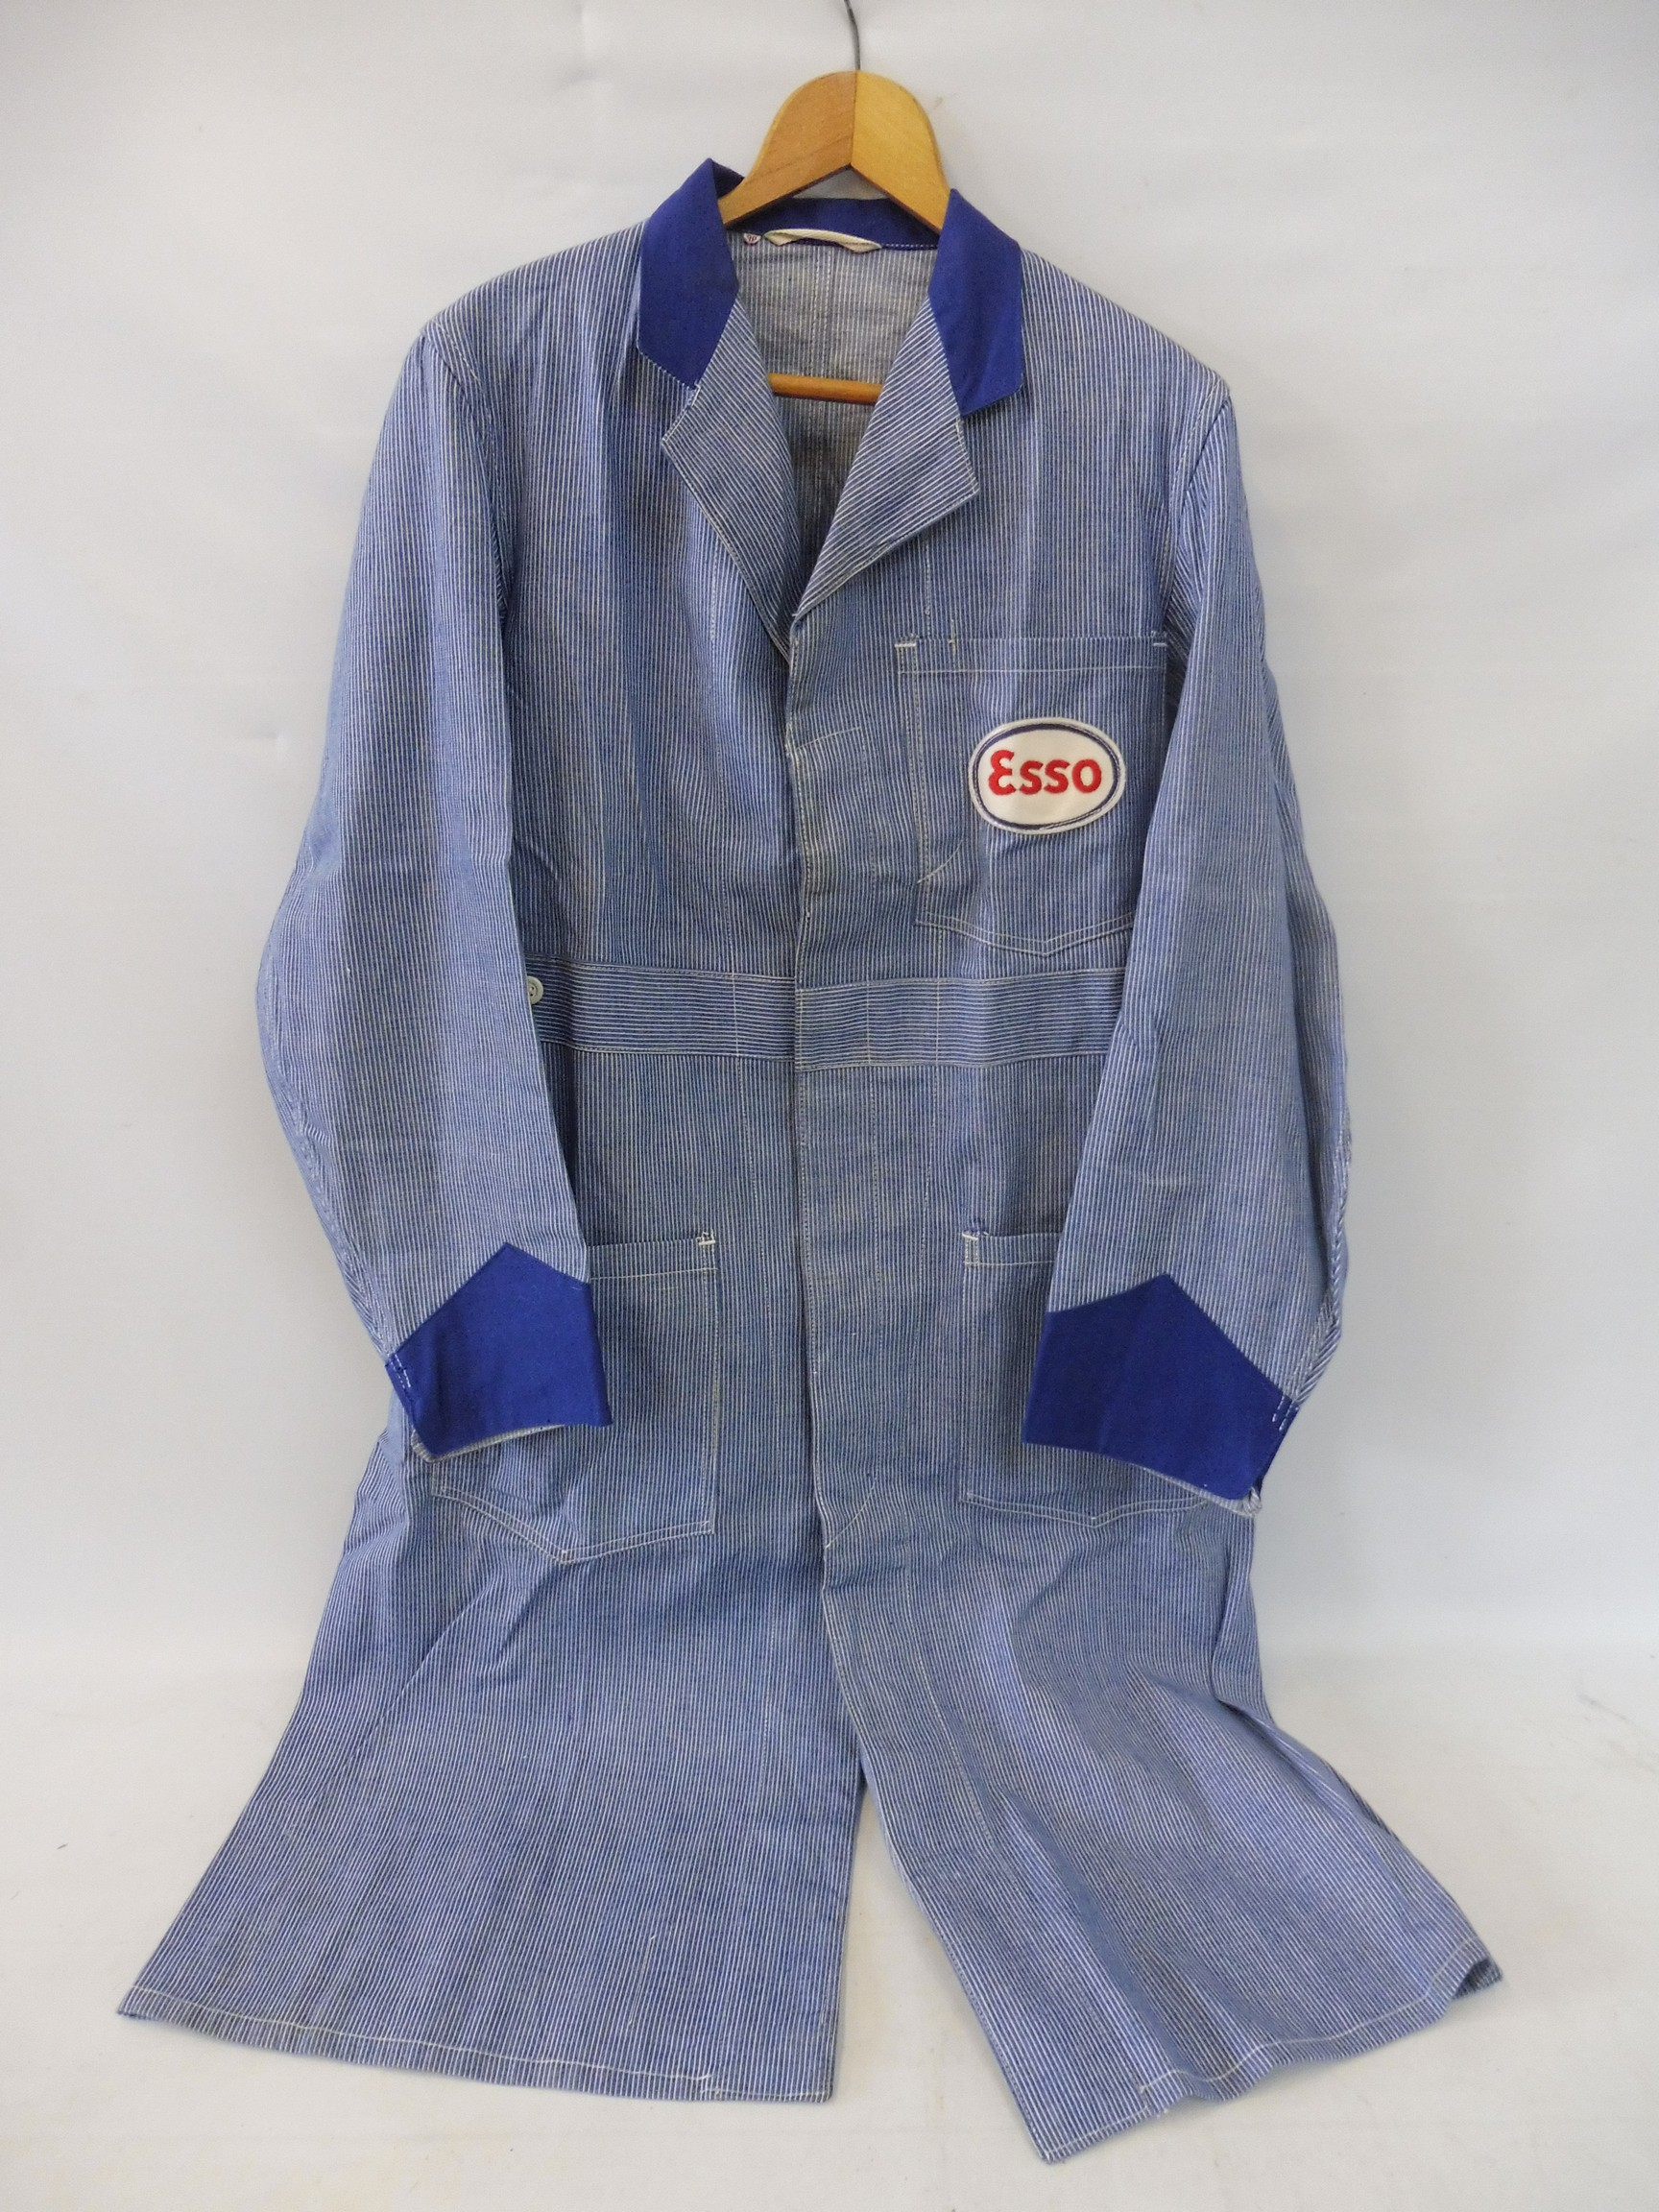 A new old stock overcoat with Esso branding, manufactured by Beacon Reg'd, size 38 (slightly